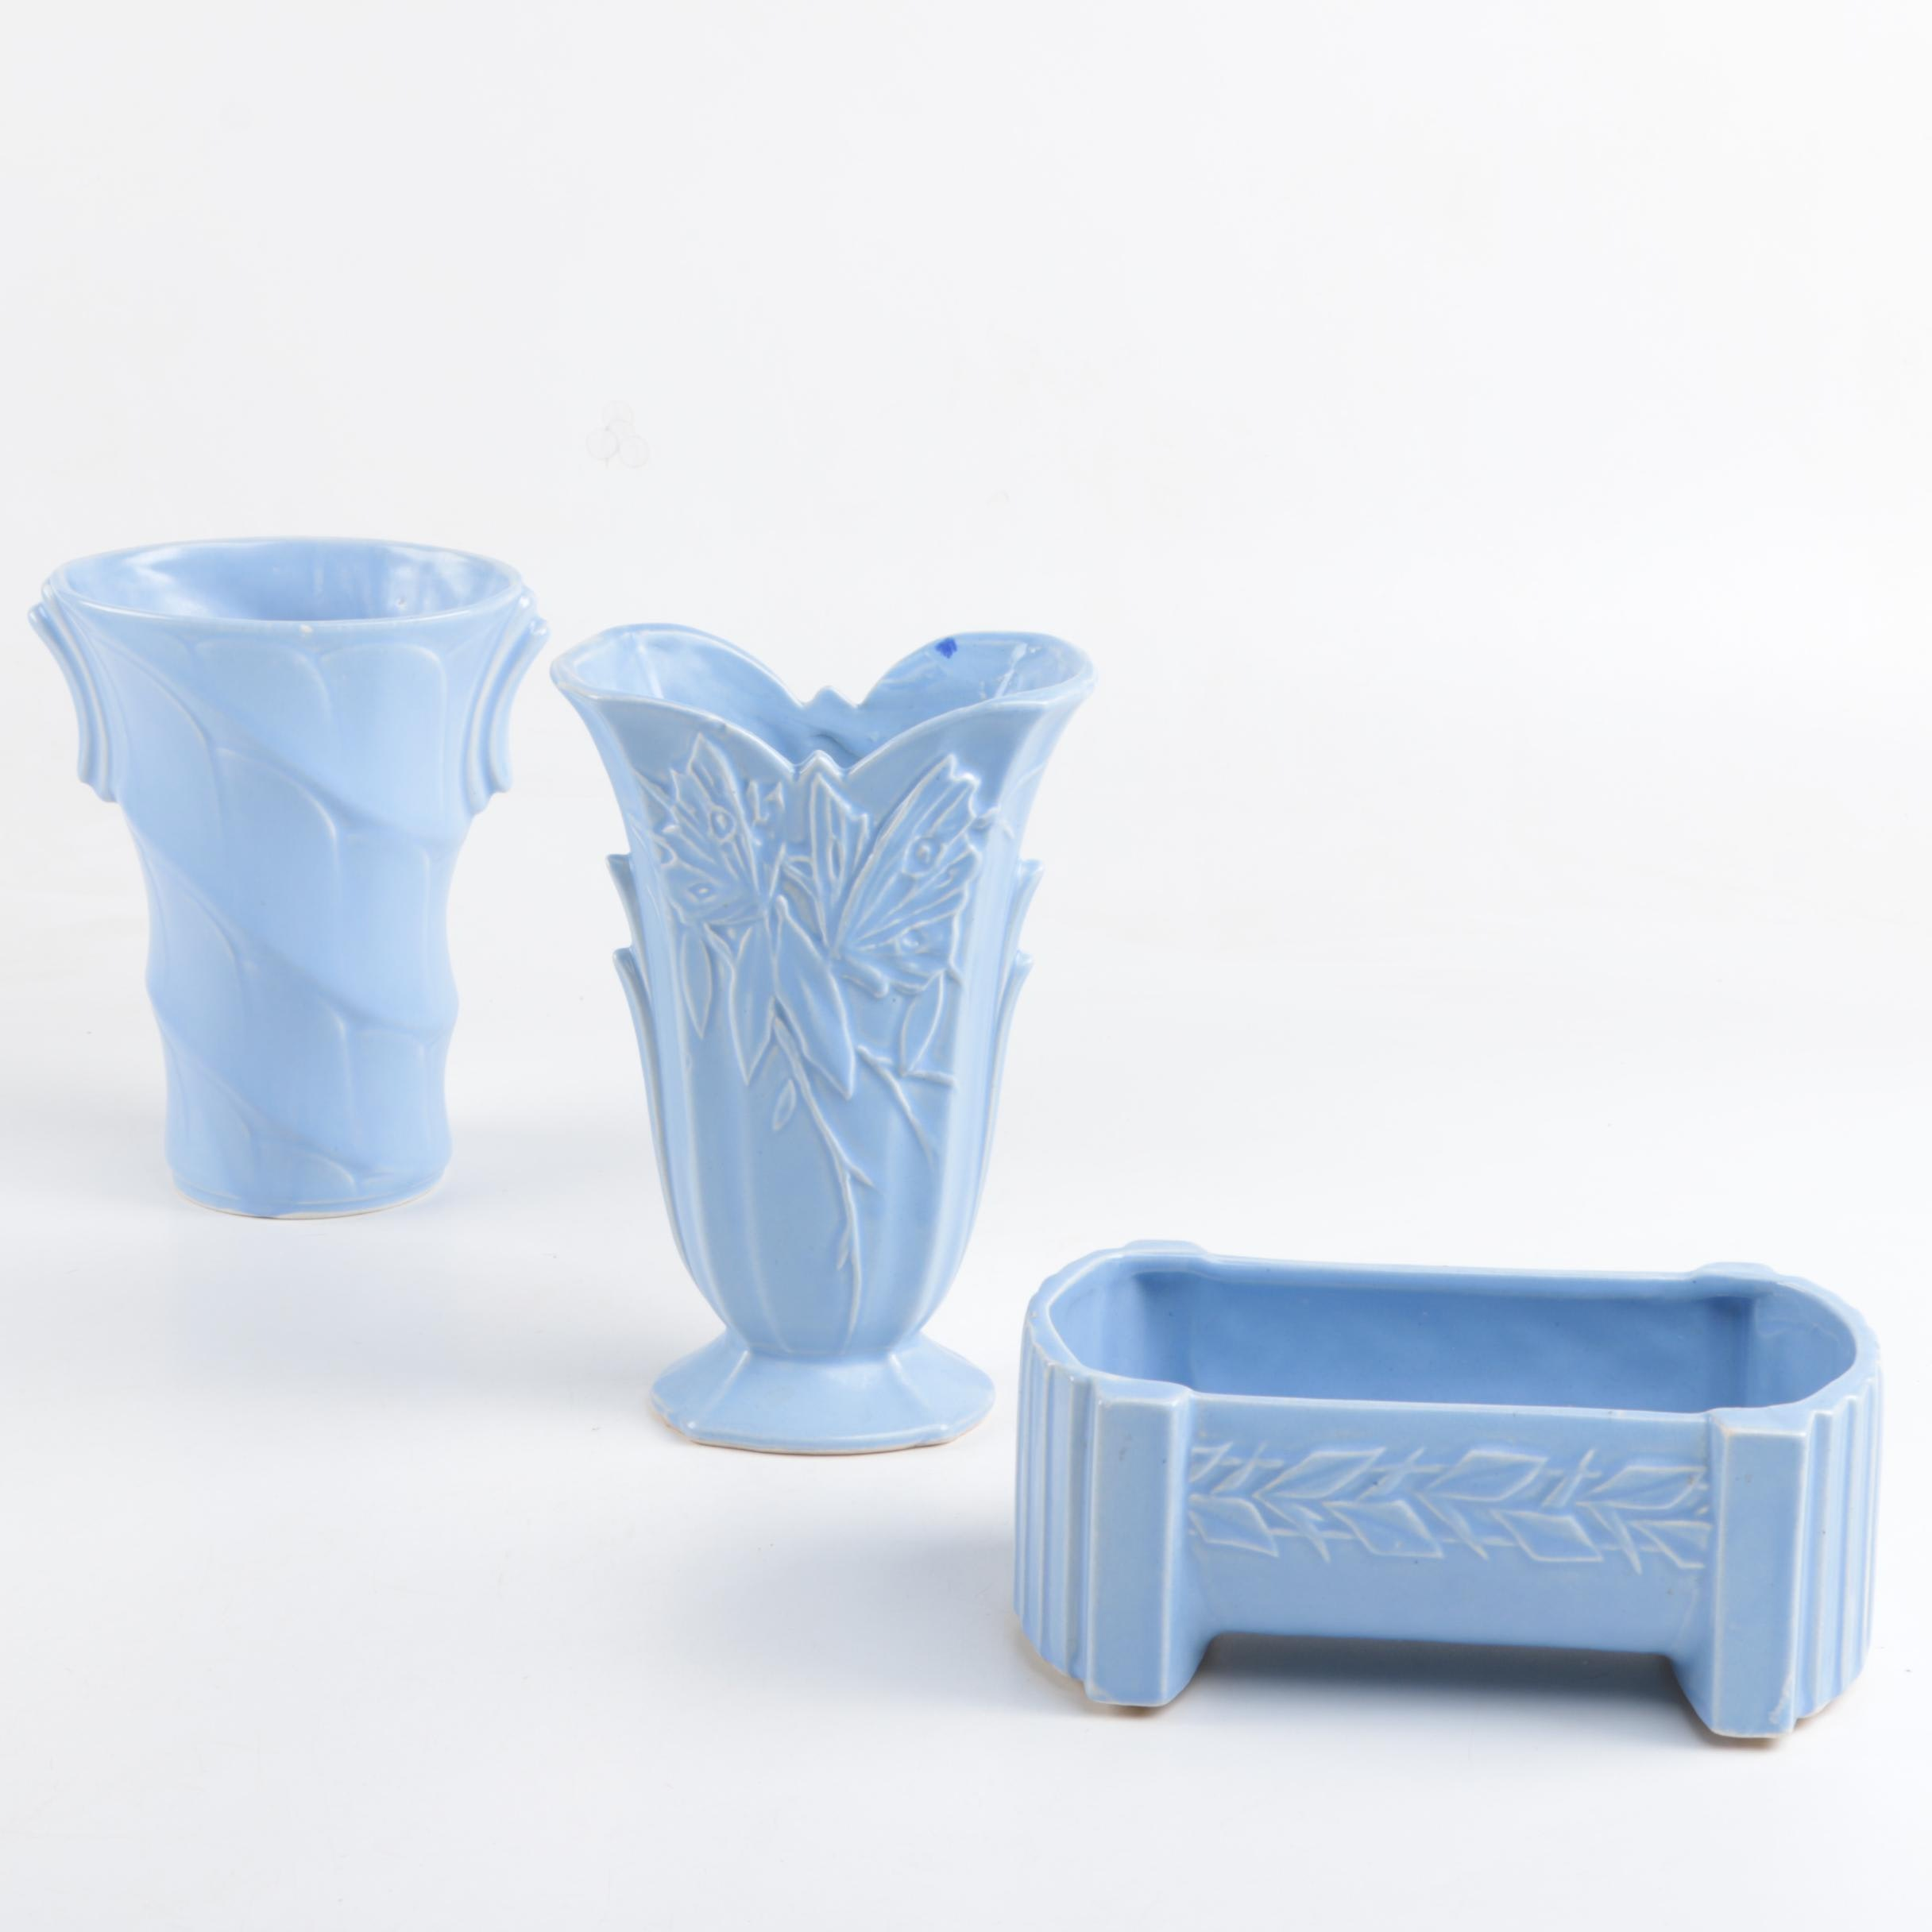 McCoy Pottery Planters in Sky Blue